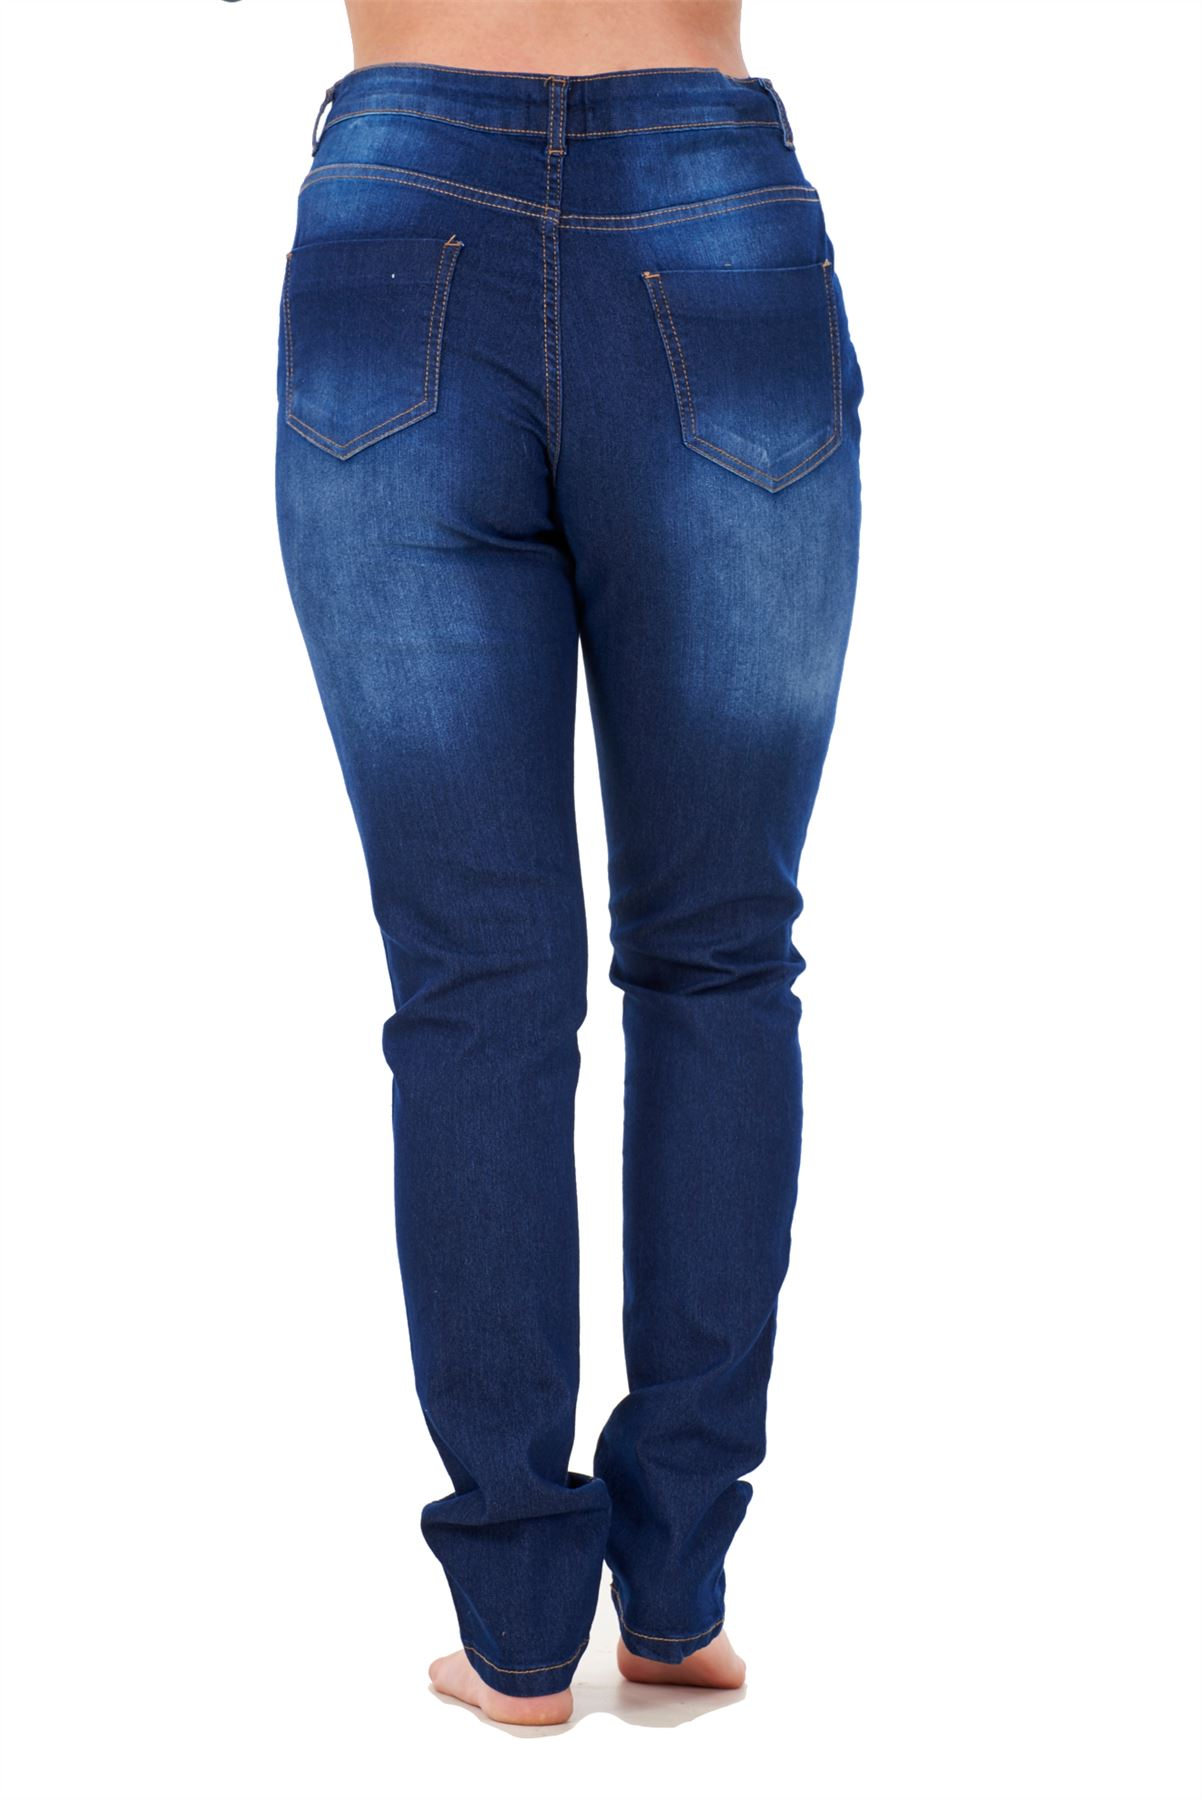 Ladies-Stretch-Jeans-Denim-cotton-Zip-fly-High-Waisted-Slim-Fit-Trousers-Pants thumbnail 16